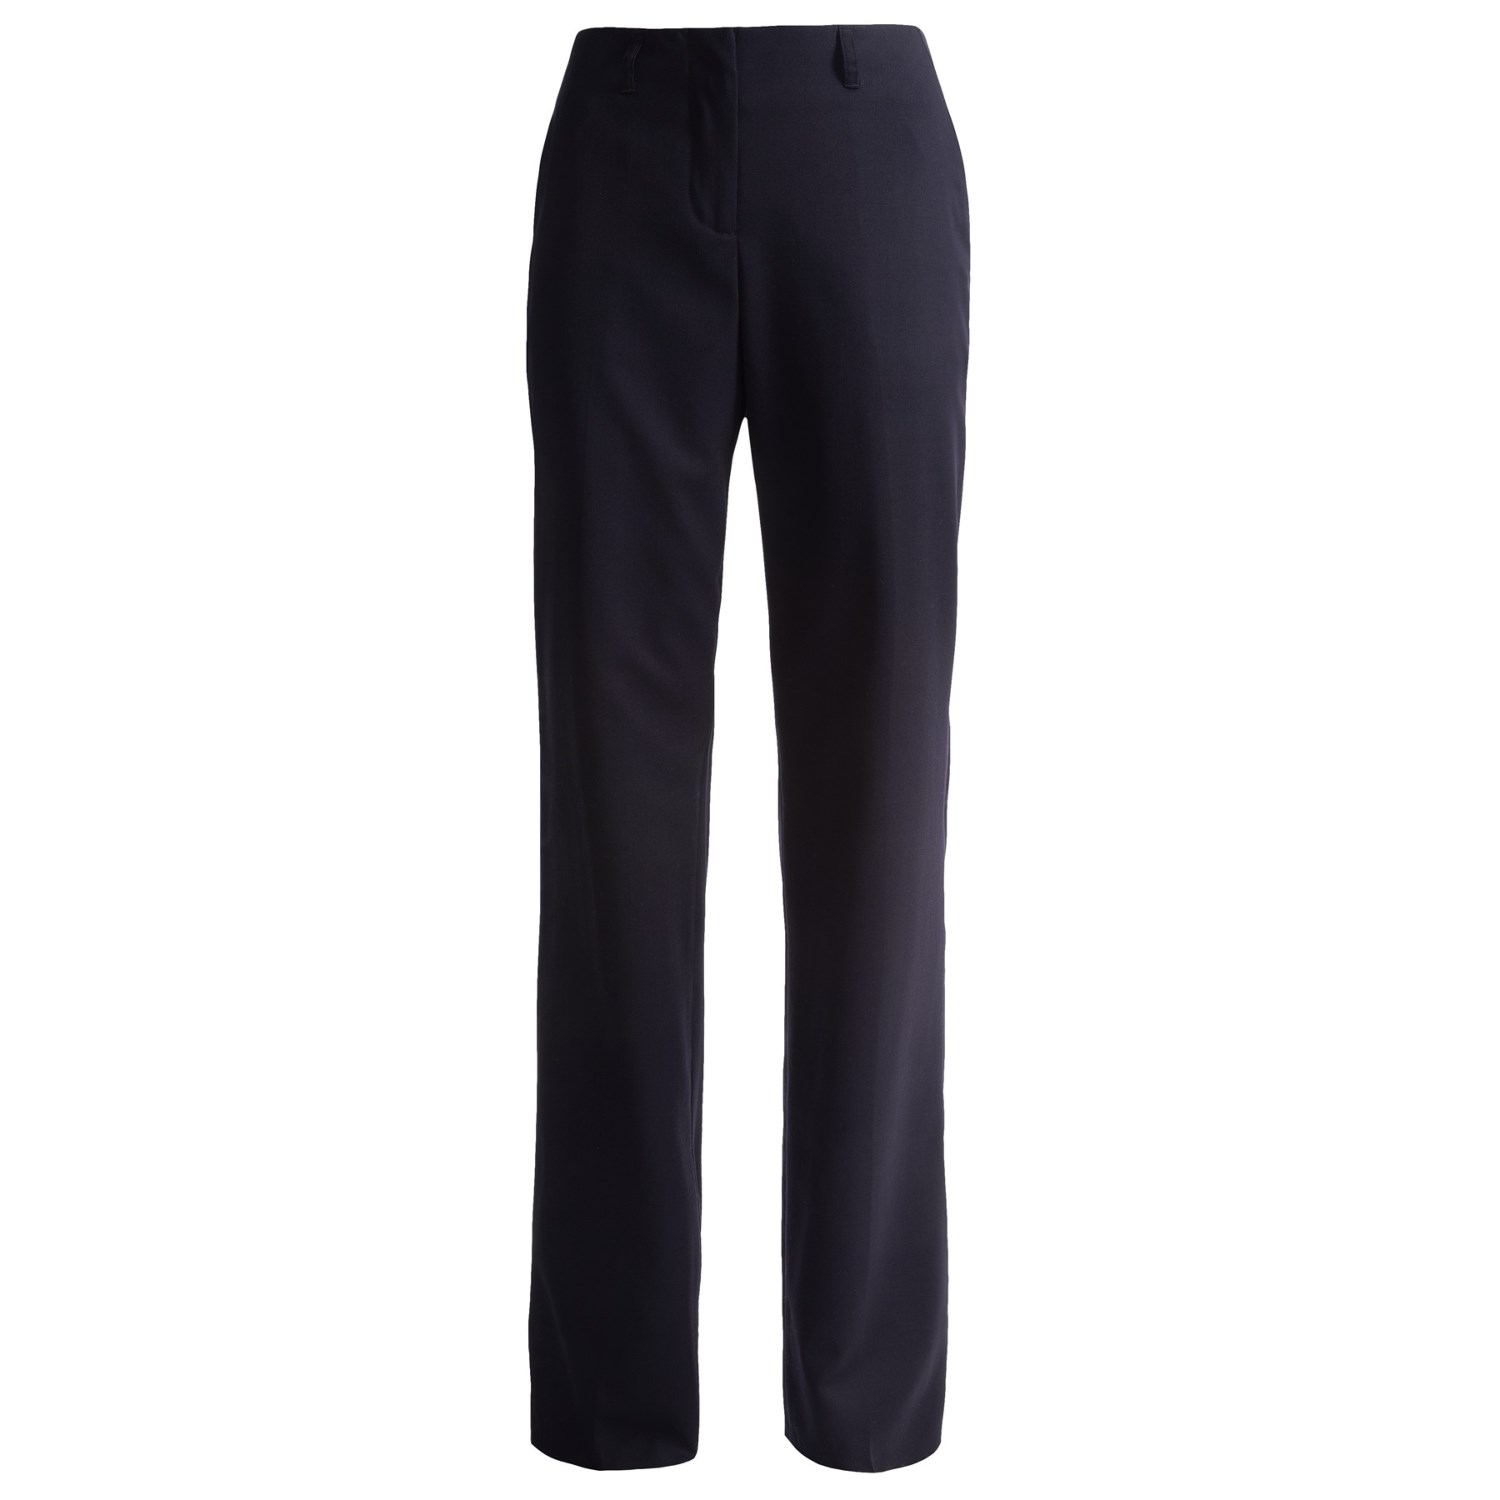 lands end womens pants photo - 1